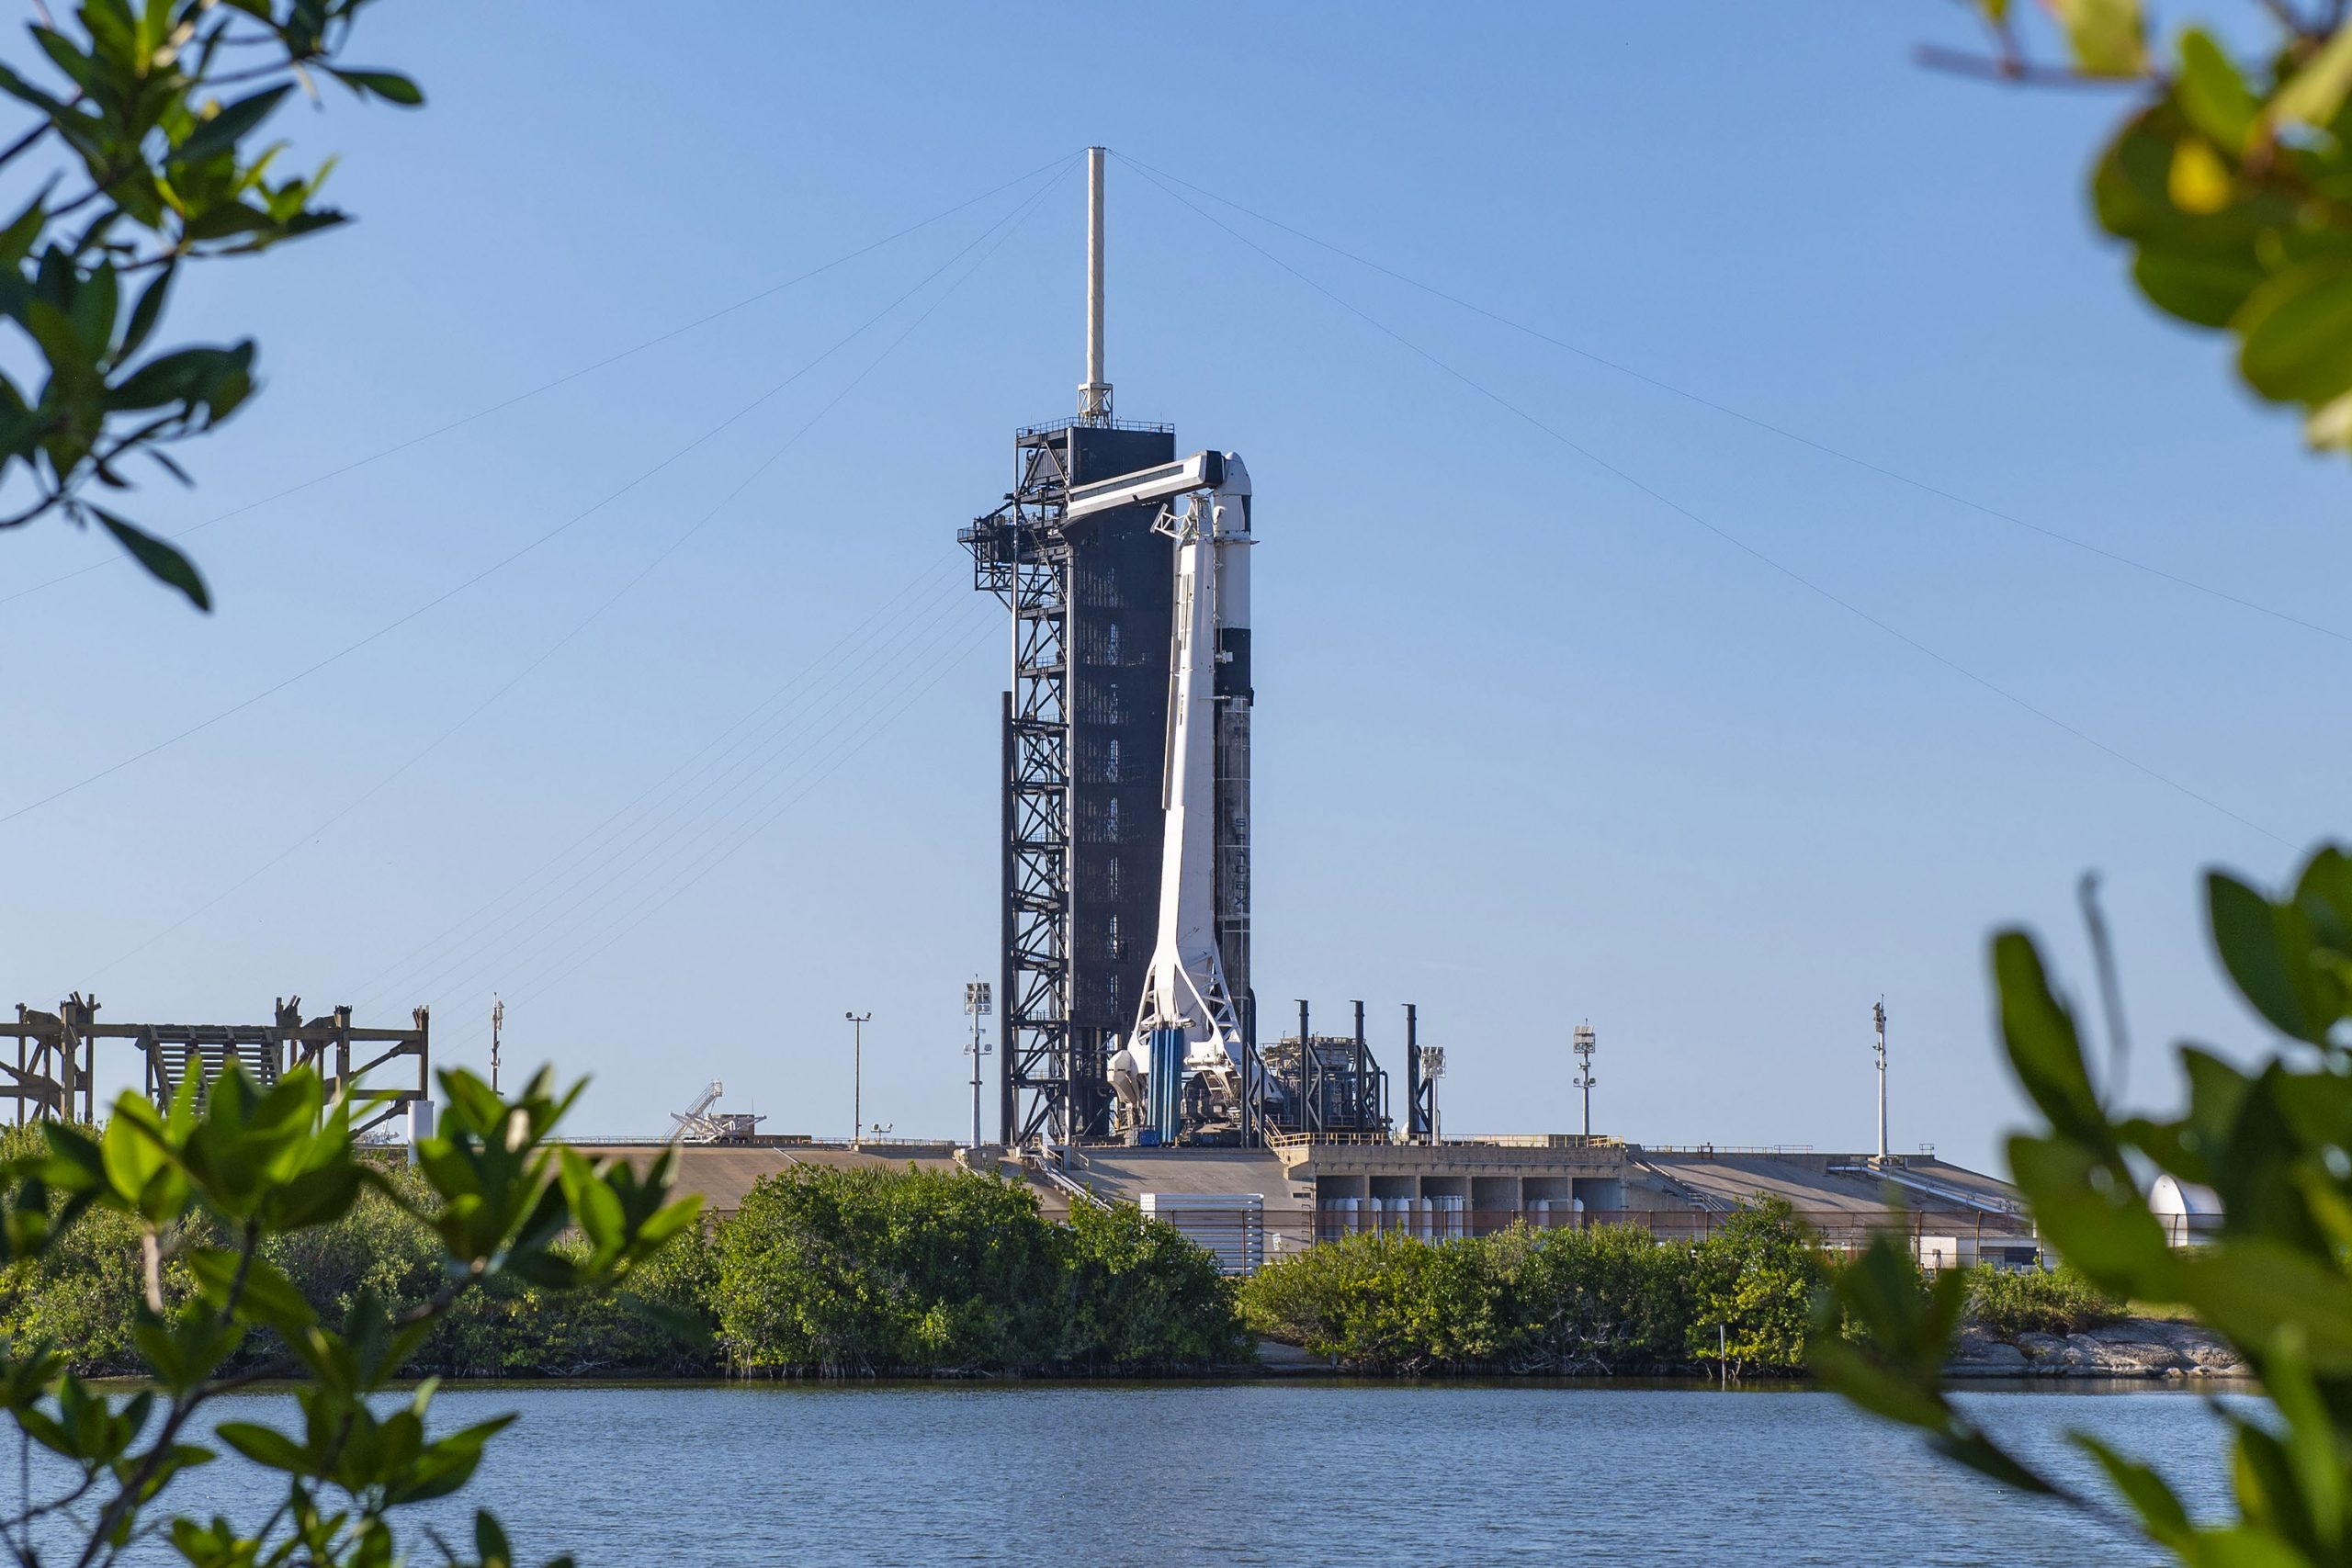 A SpaceX Falcon 9 rocket and cargo Dragon spacecraft stand ready for liftoff for the company's CRS-21 mission on Dec. 6, 2020.